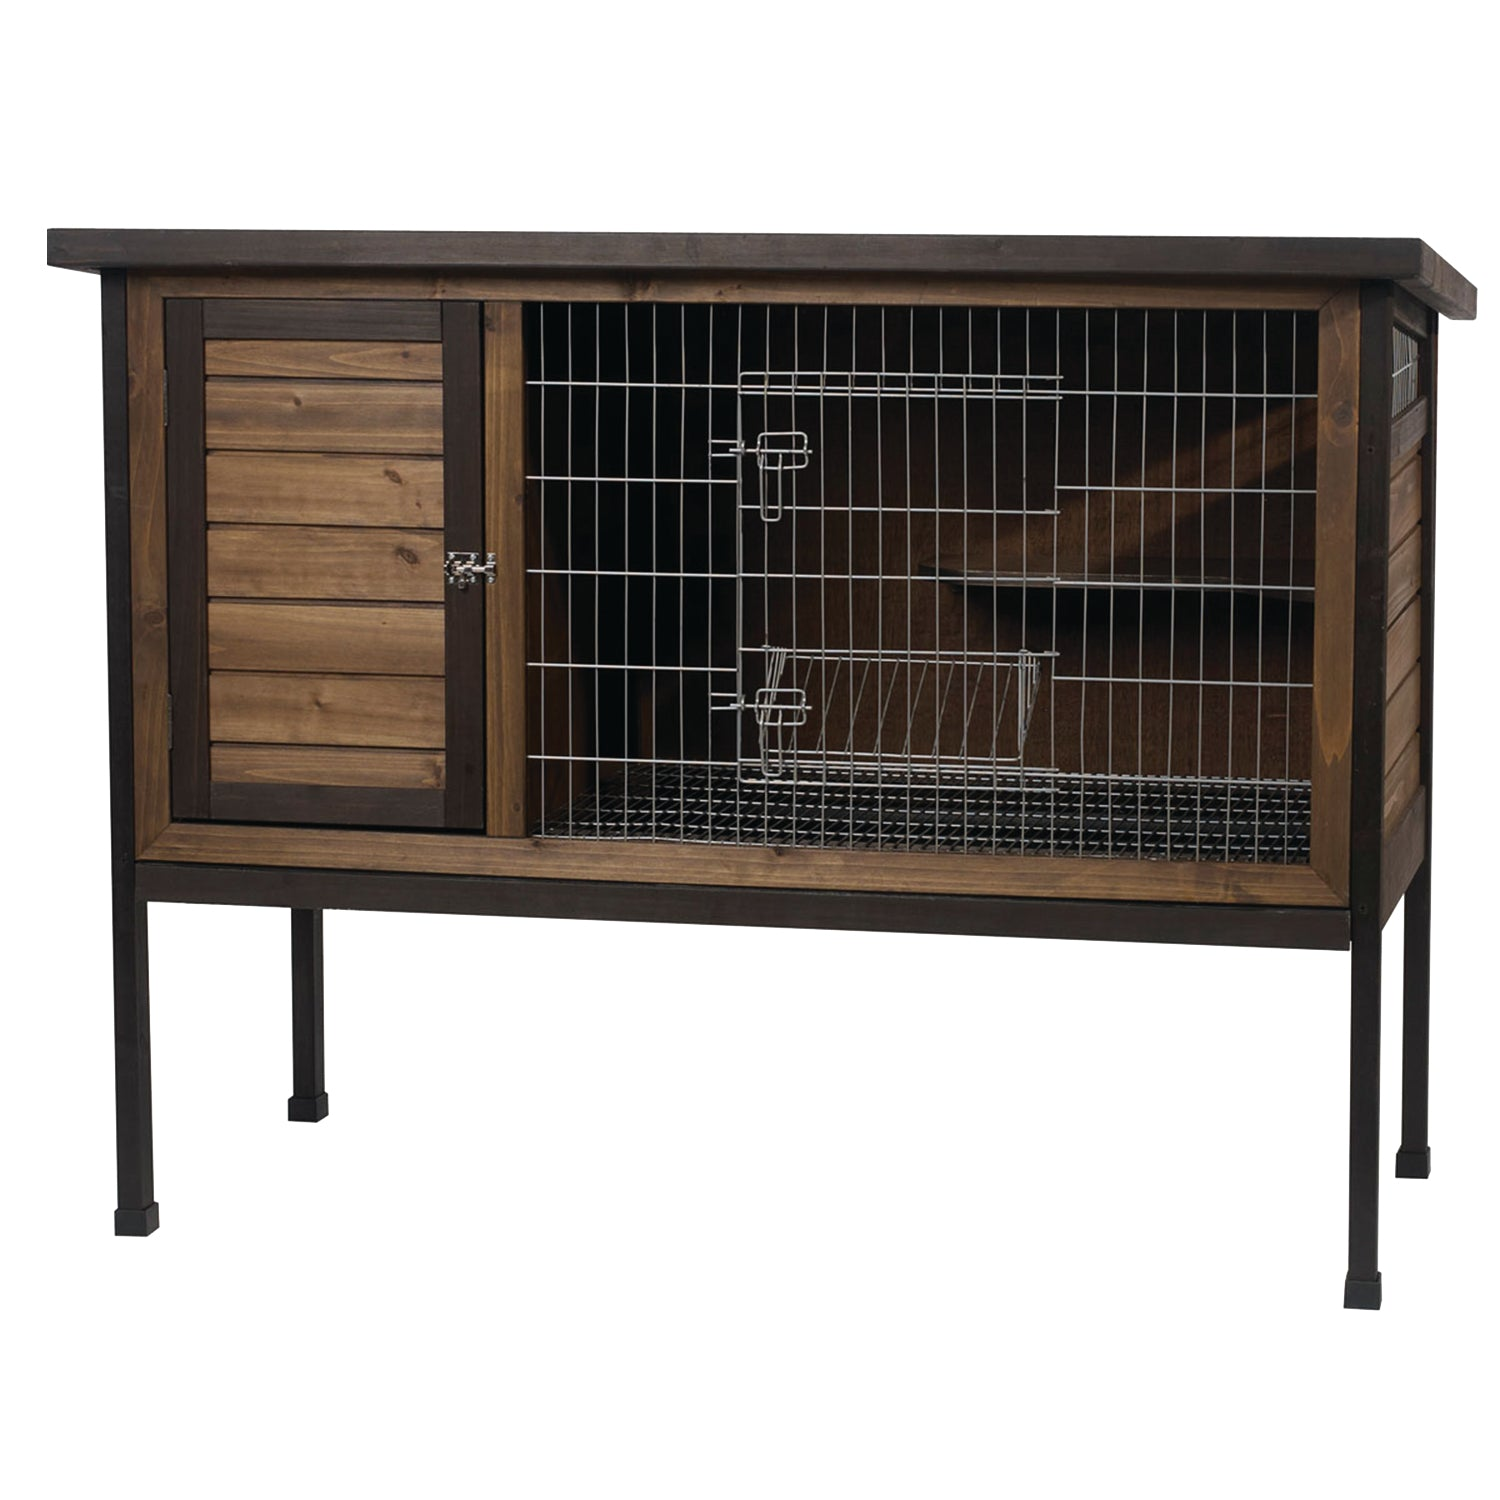 Kaytee Guinea Pig Hutch, 1-Story, 48-Inch Wide